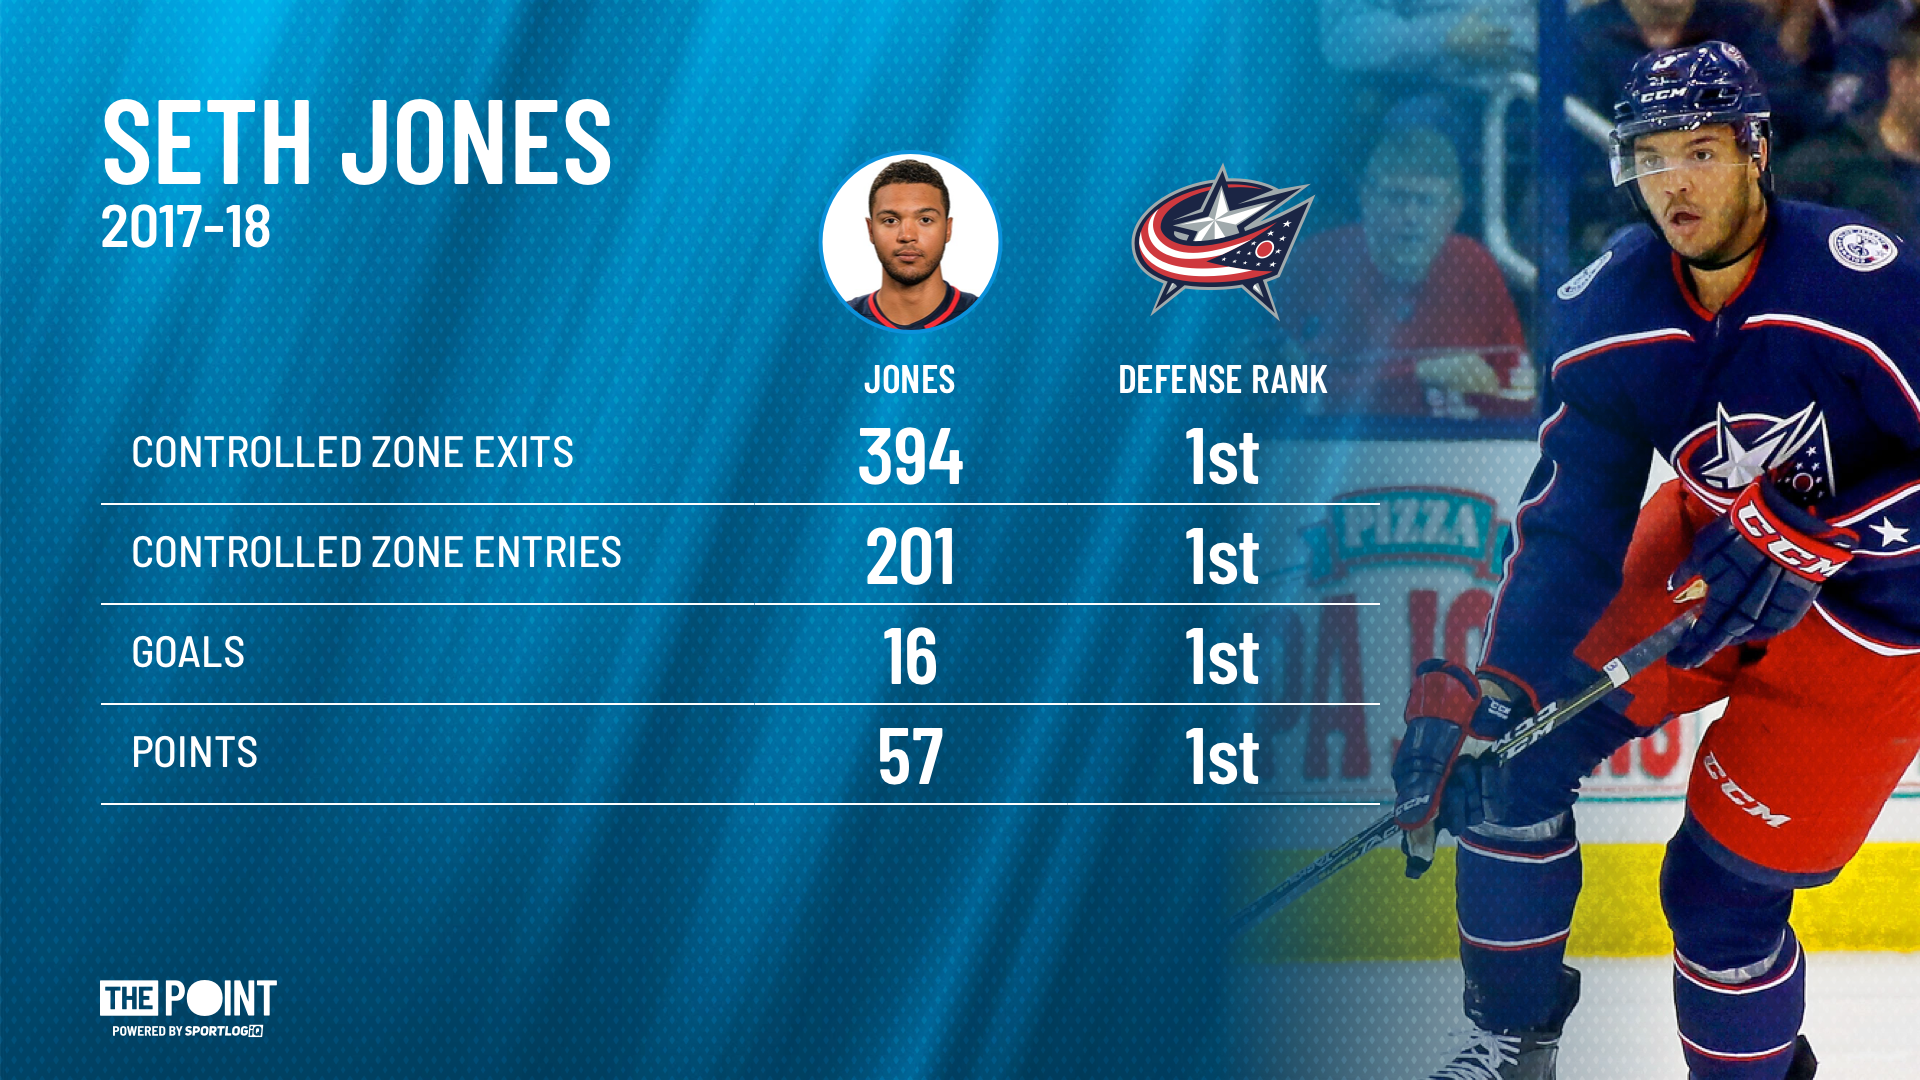 Seth Jones: Out 4-6 Weeks